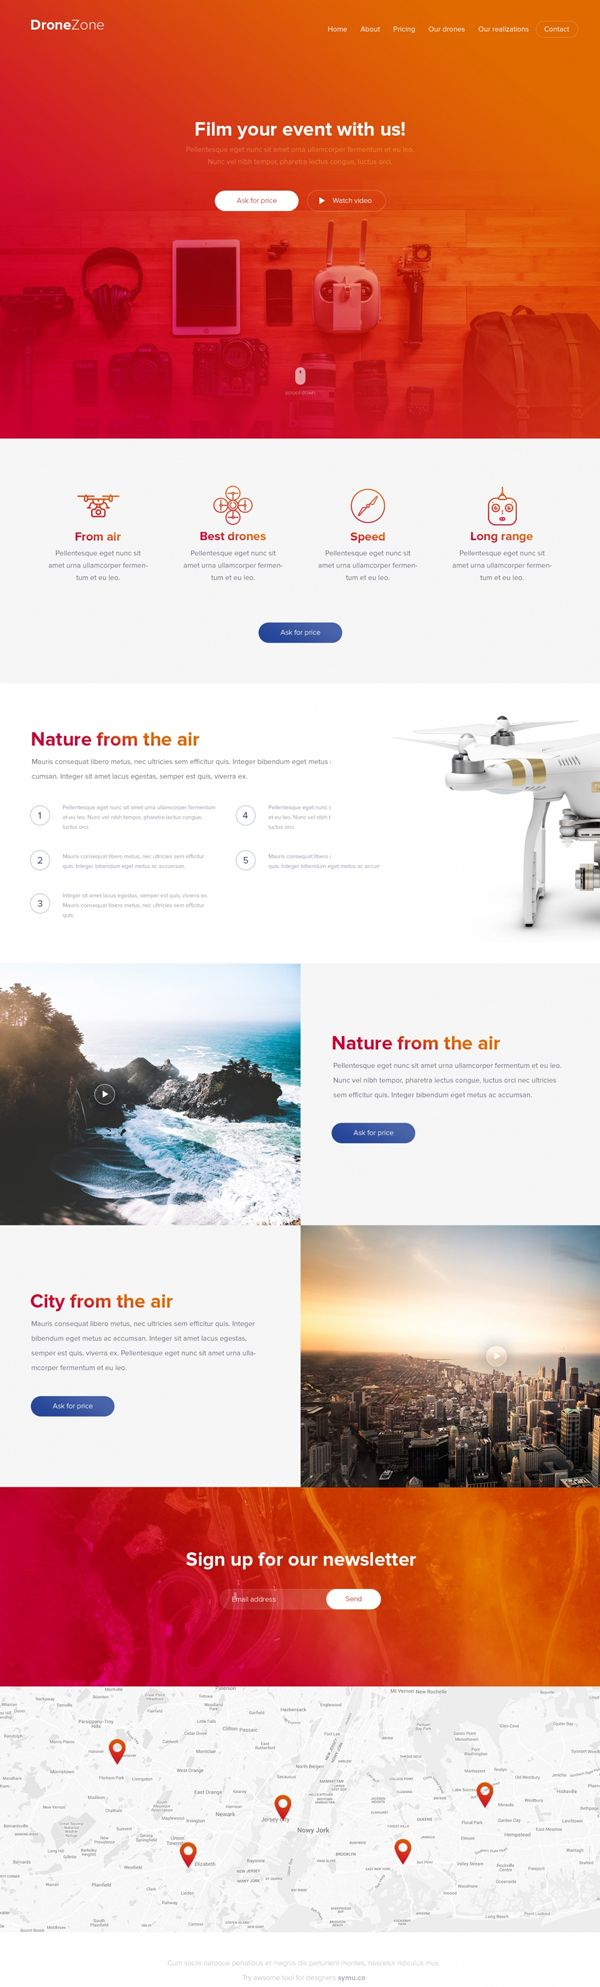 Drone zone Free PSD Website Template